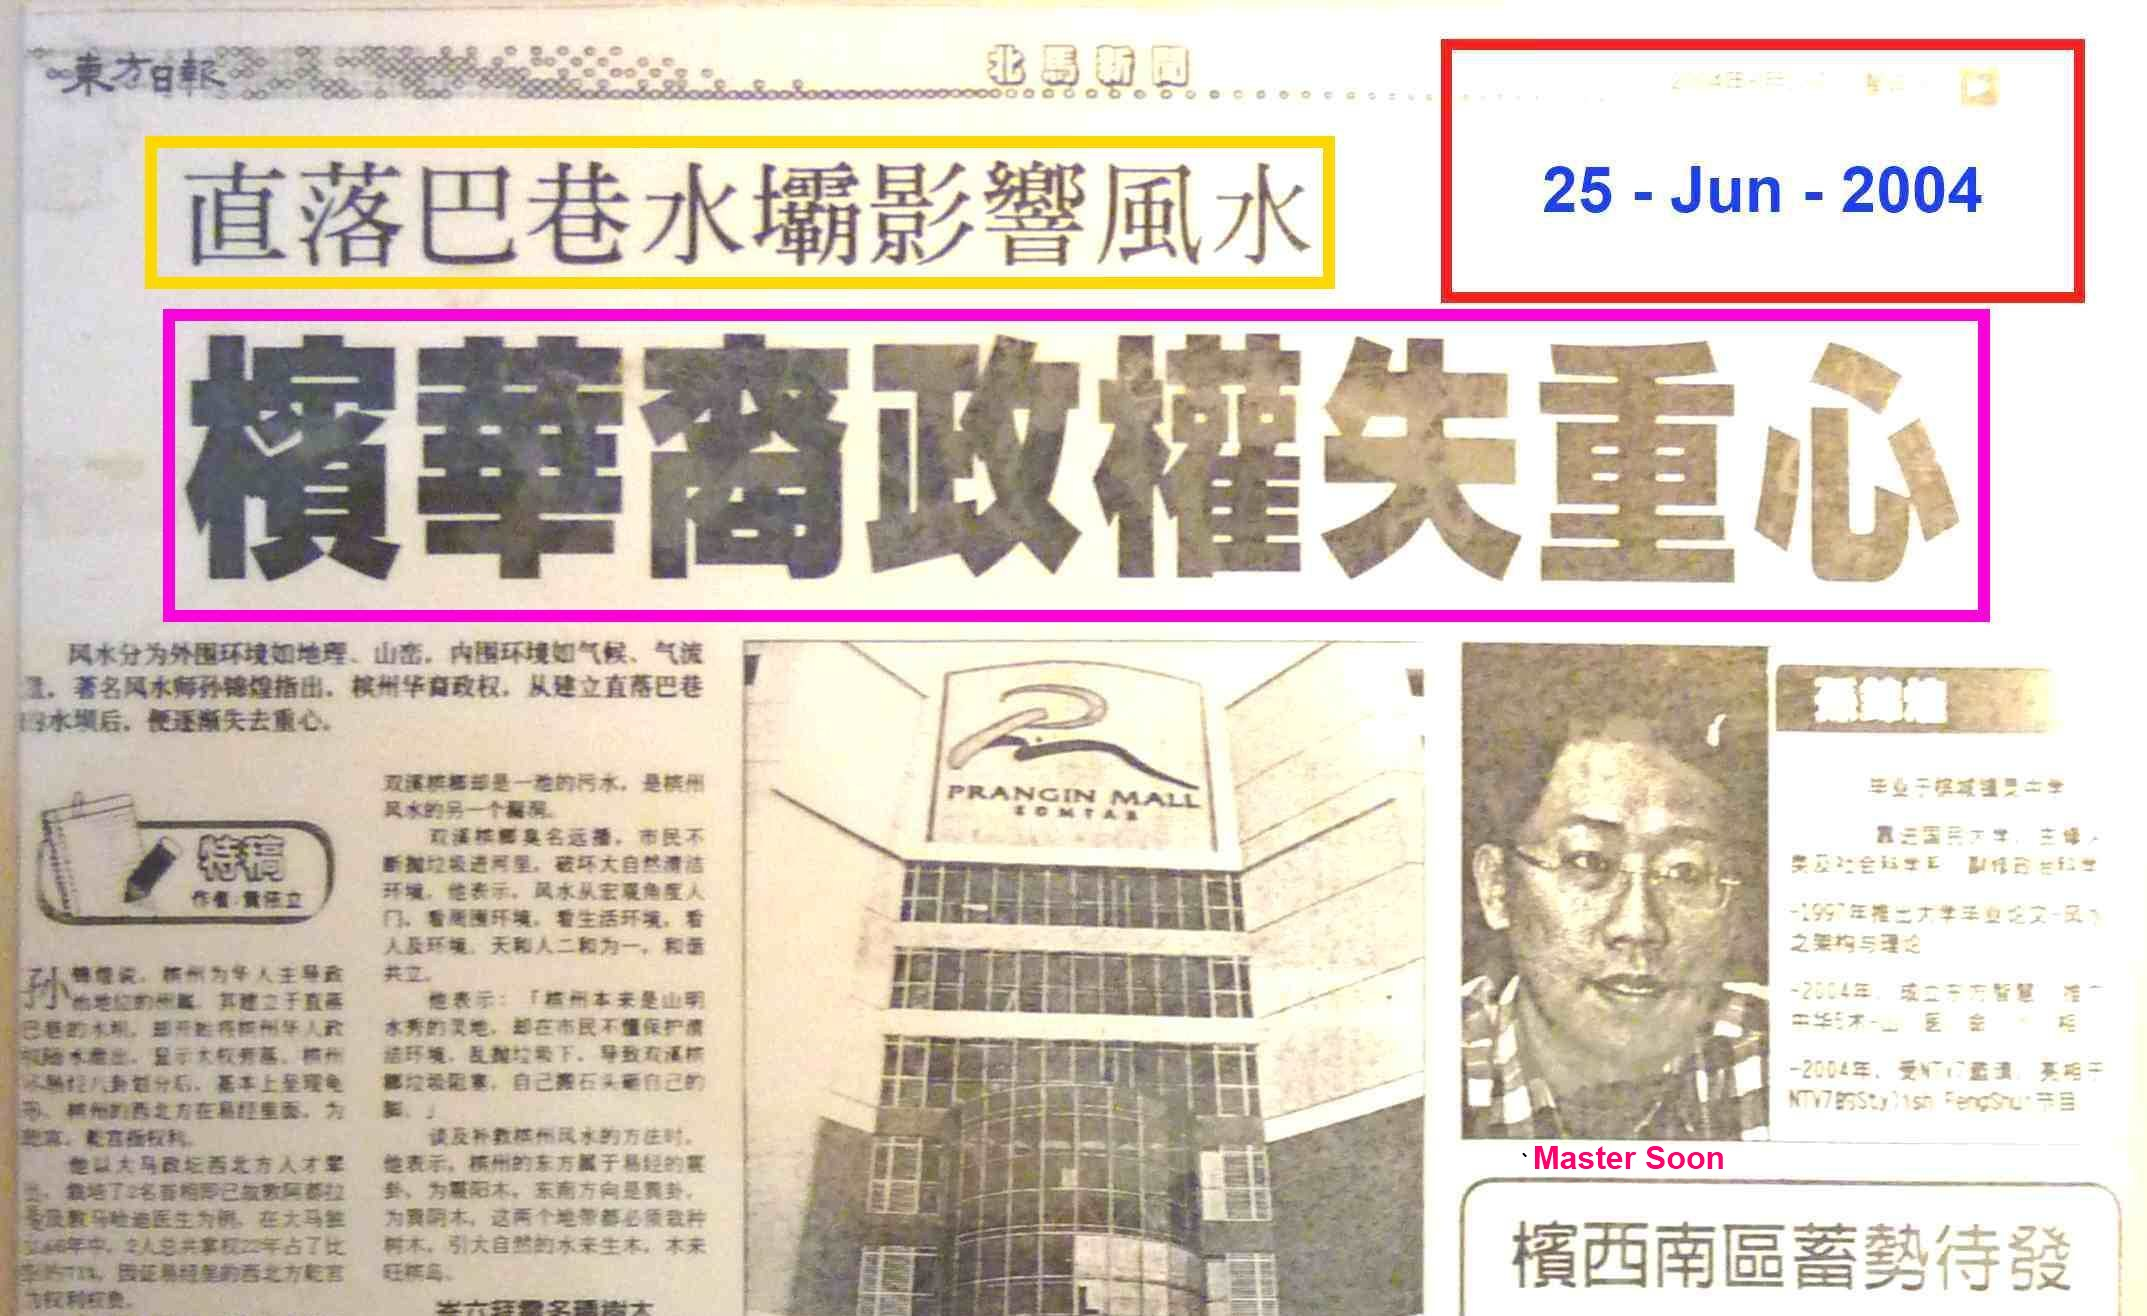 Former Penang Chief Minister Constructed Teluk Bahang Dam; the Feng Shui of the Dam Made Him Down Fall in 2008. Master Soon Had Predicted This in year 2004. 前任槟城州首席部长(省长) 建设次水坝;然而其风水却造成2008年垮台。孙老师早于2004年就预测此事。前任槟城州首席部长(省长) 建设次水坝;然而其风水却造成2008年垮台。孙老师早于2004年就预测此事。